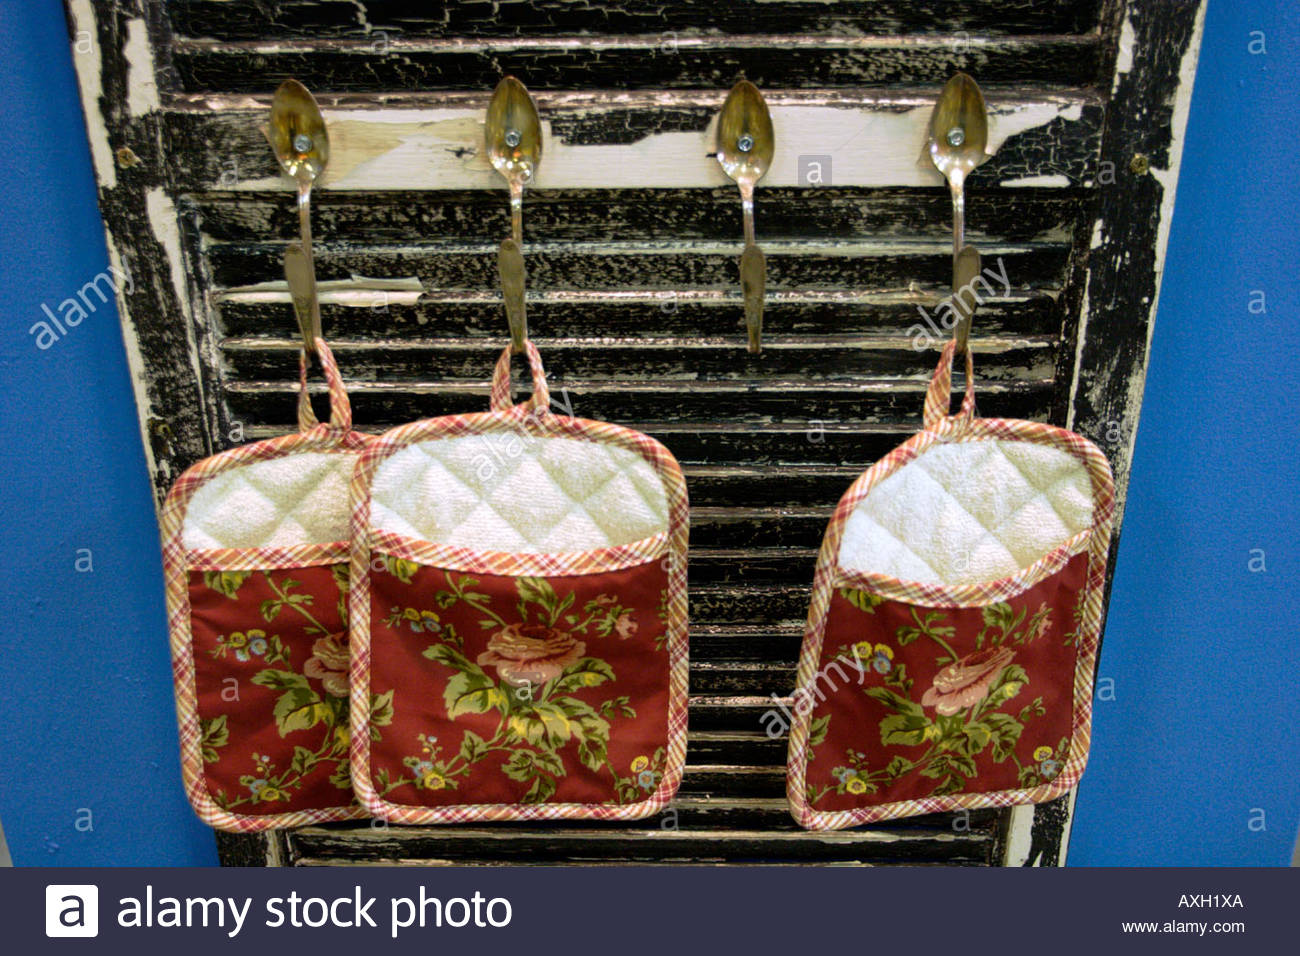 Oven Mitts Hanging off Spoons on a Door Los Angeles County Fair California - Stock Image